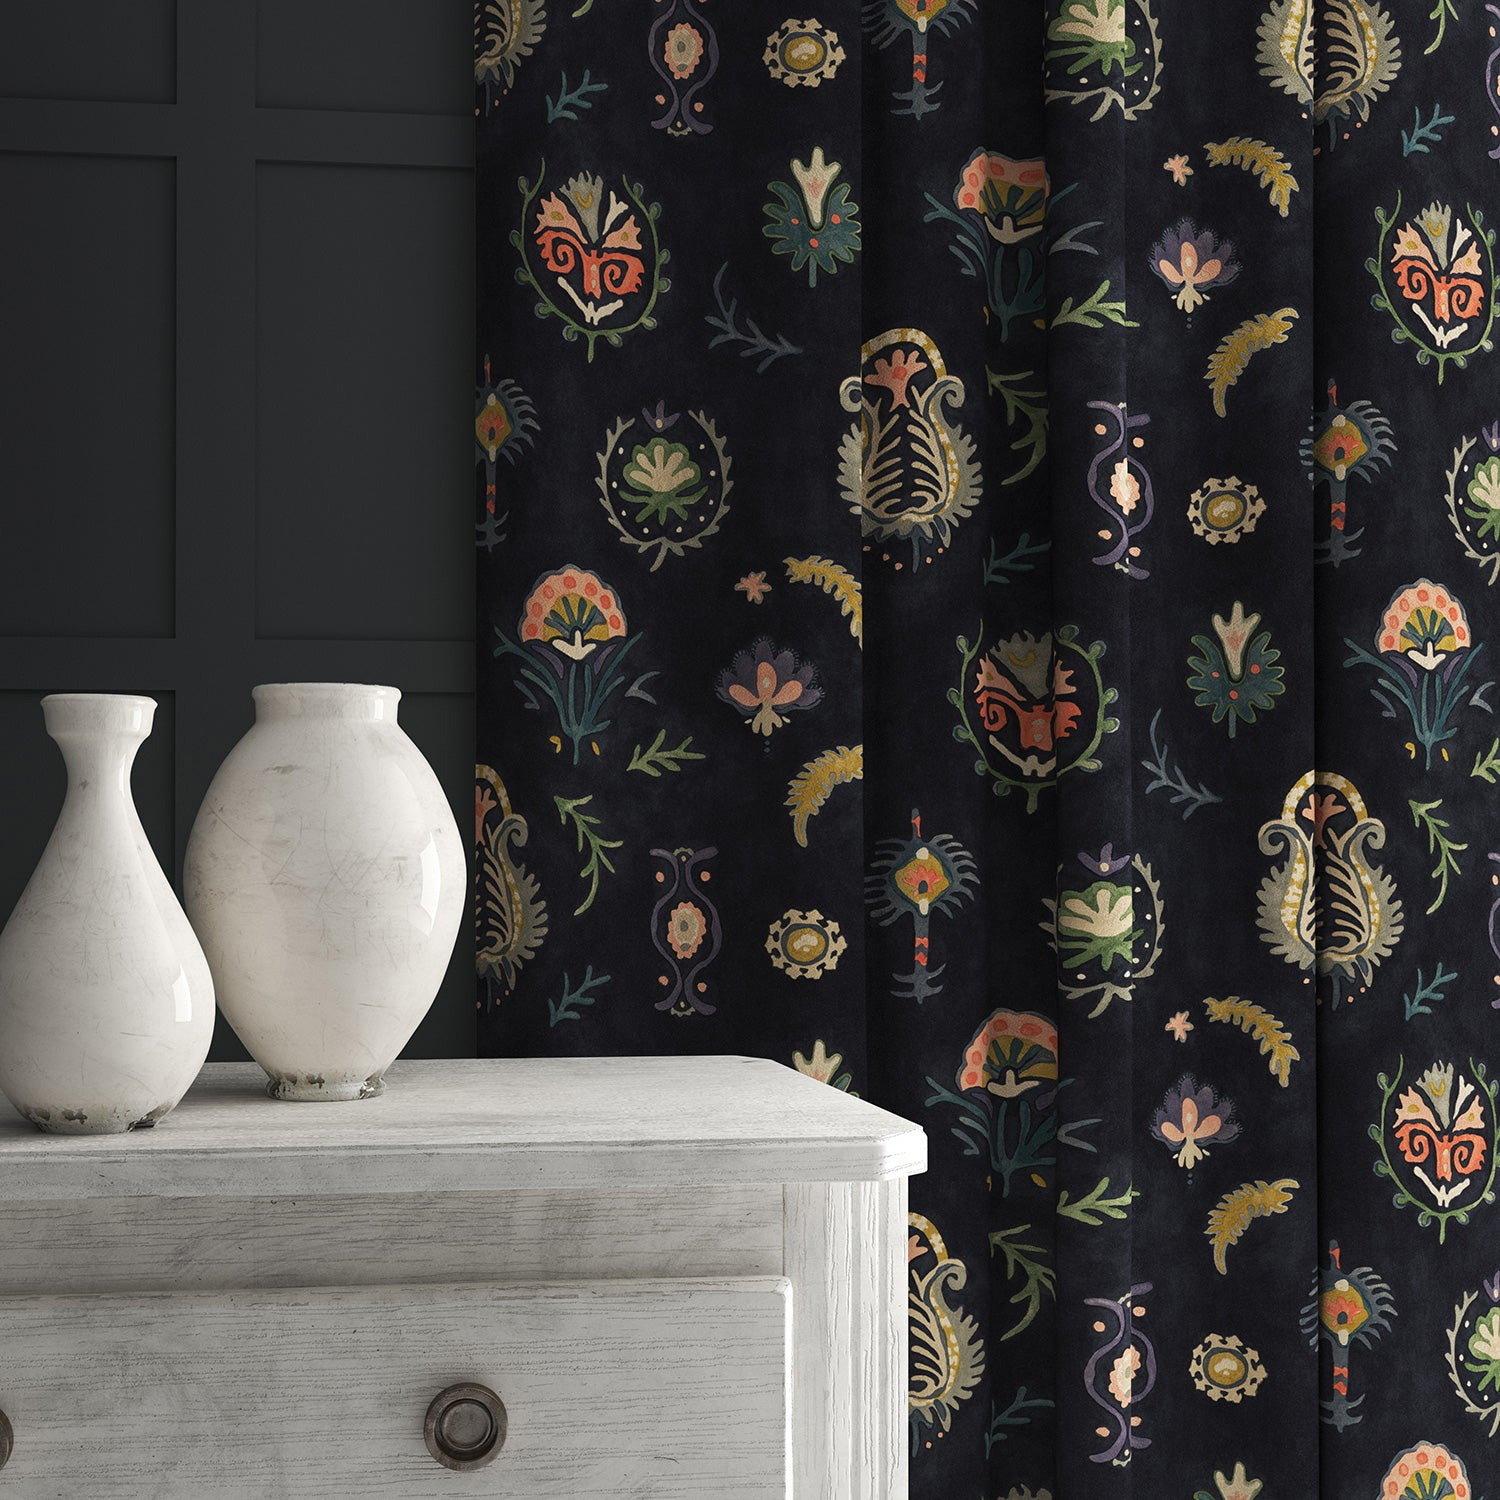 Curtain in a dark, luxurious stain resistant velvet with whimsical design